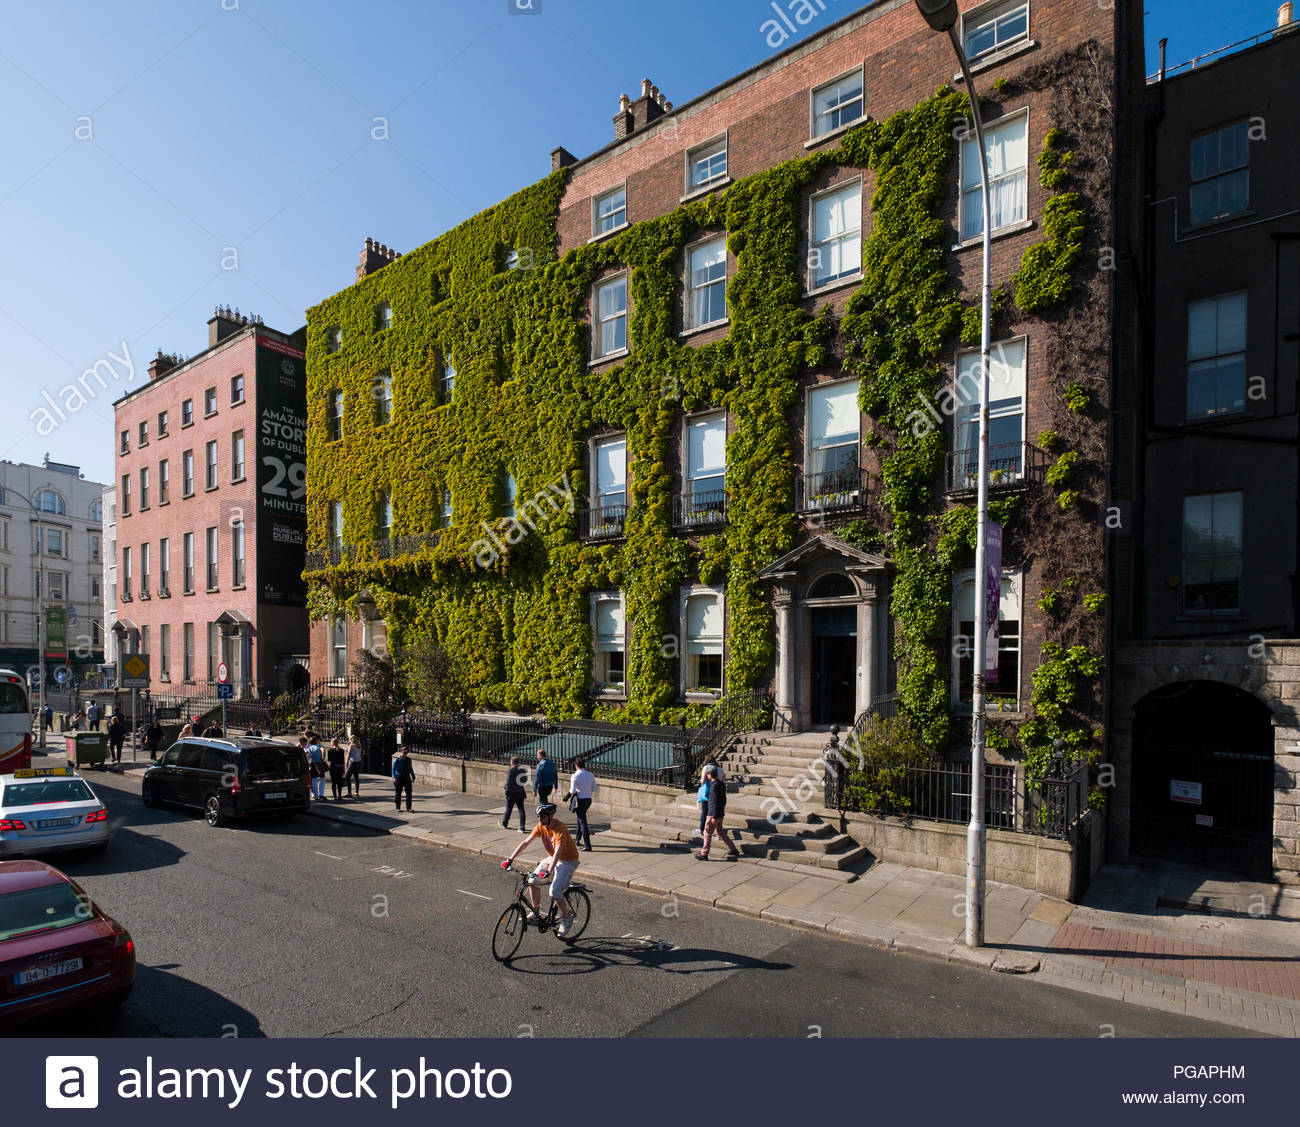 Kildare Street and University Club Ivy covered brick building, 17 St Stephen's Green, Dublin, Leinster, Ireland - Stock Image